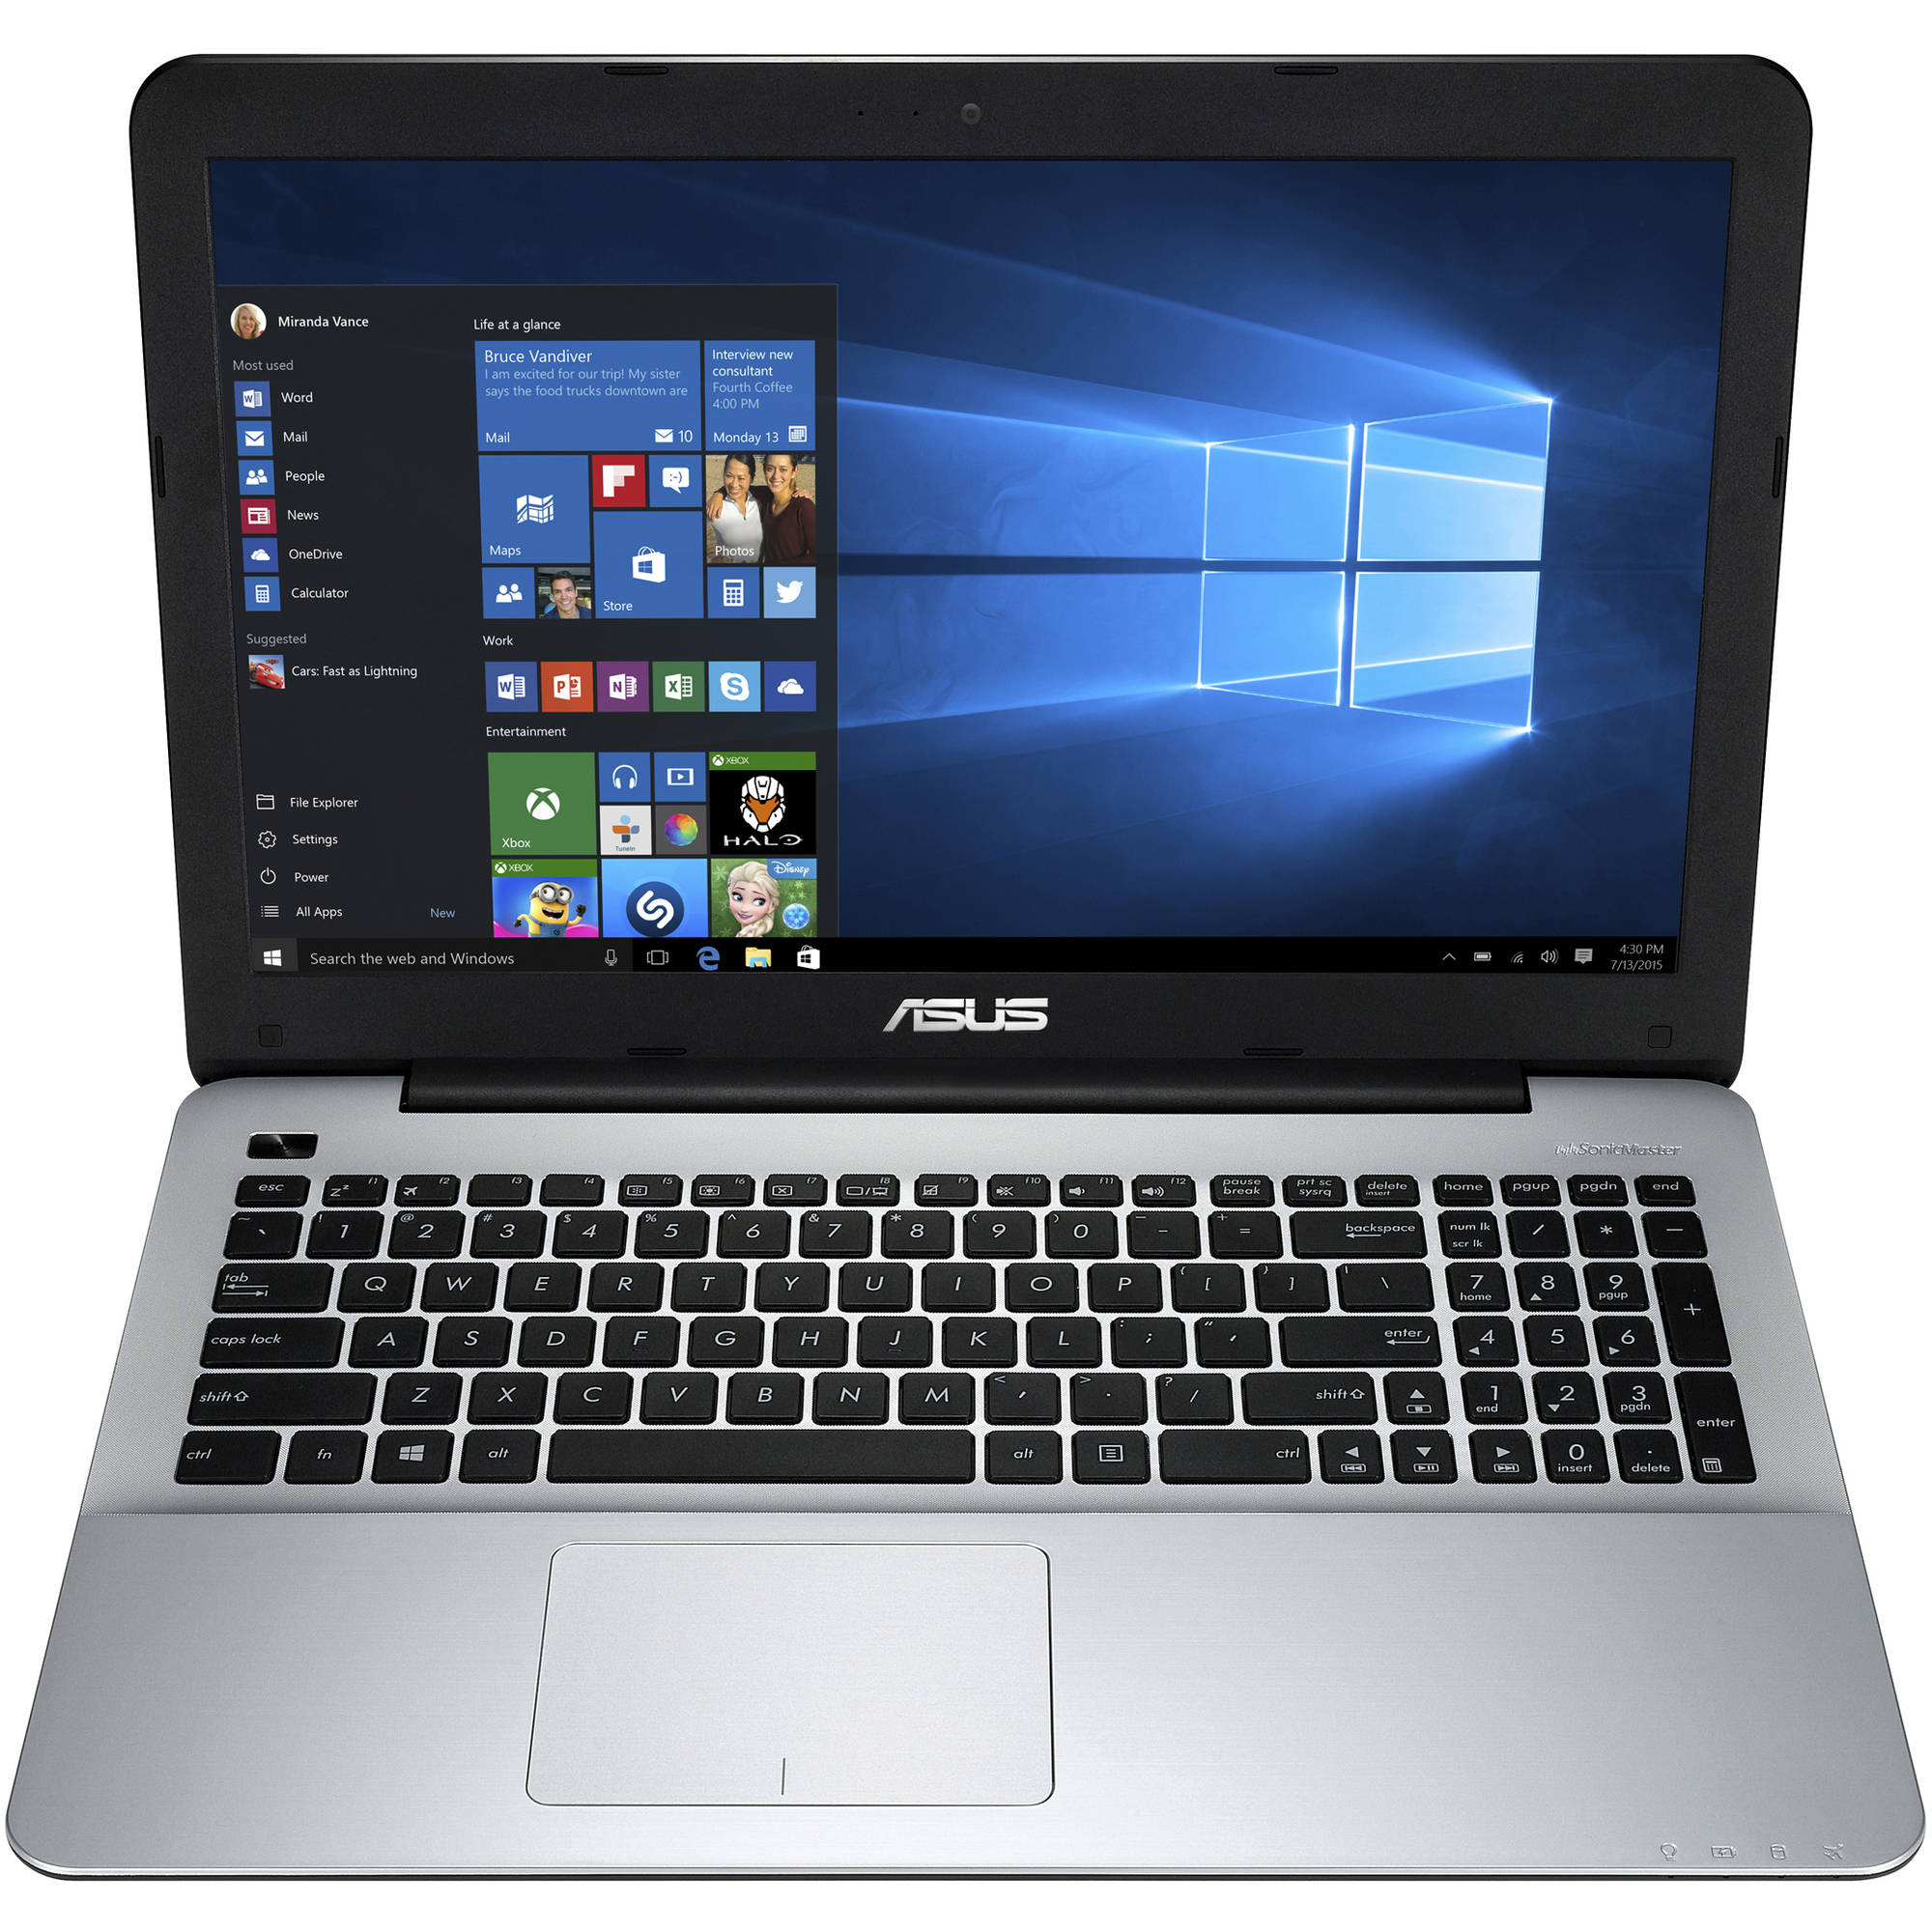 "ASUS Matte Black X555DA-WB11 15.6"" Laptop PC with AMD Quad-Core A10-8700P Processor, 4GB Memory, 500GB Hard Drive and Windows 10"